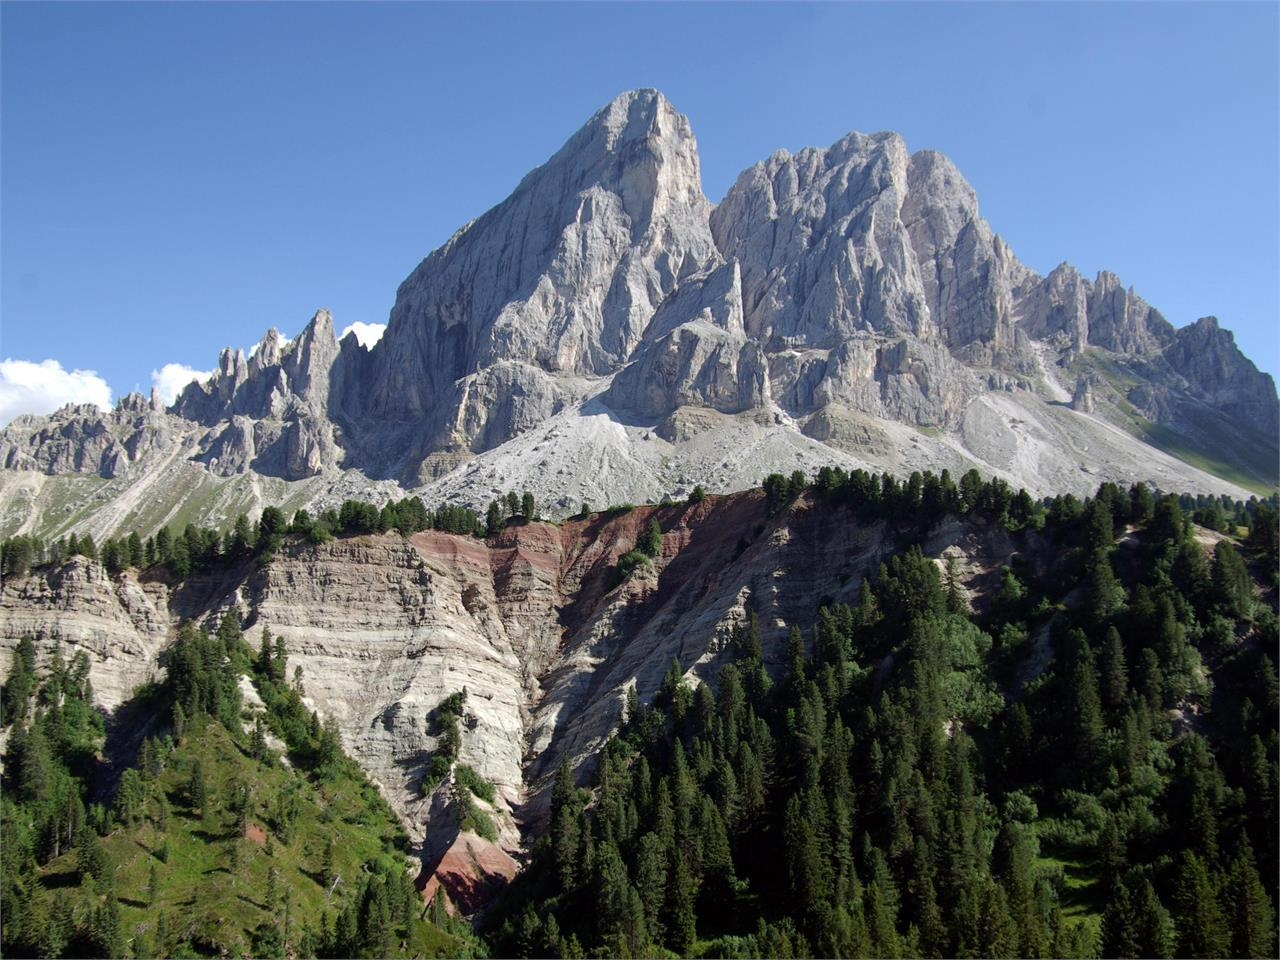 Guided hike: Passo delle Erbe – among fossils and flowers